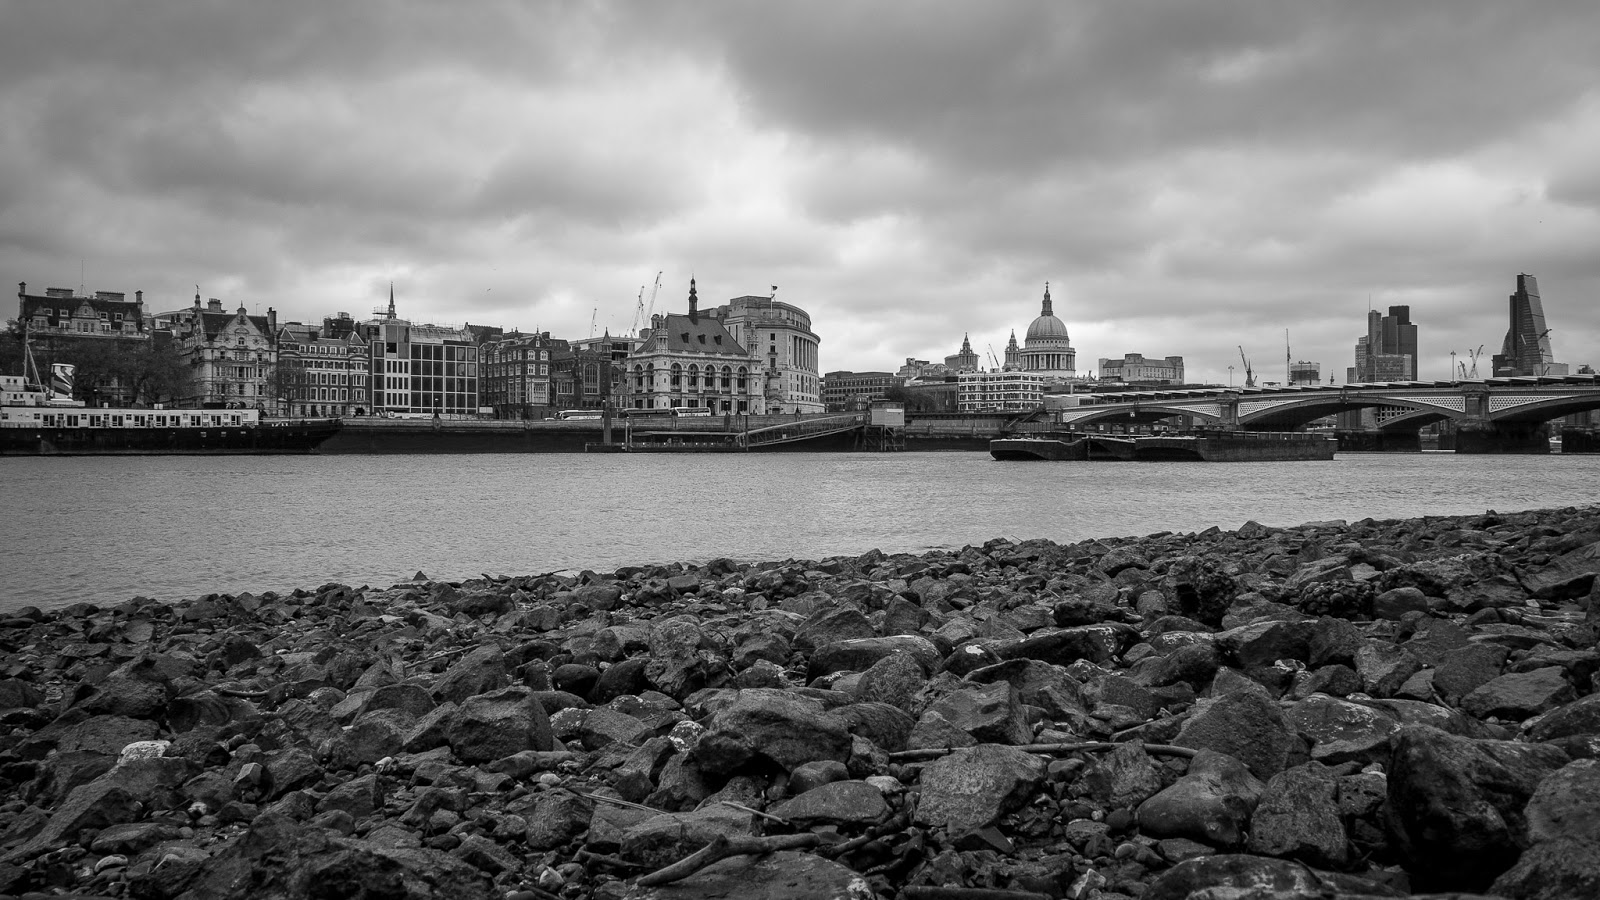 London city scape from the southern banks of the River Thames